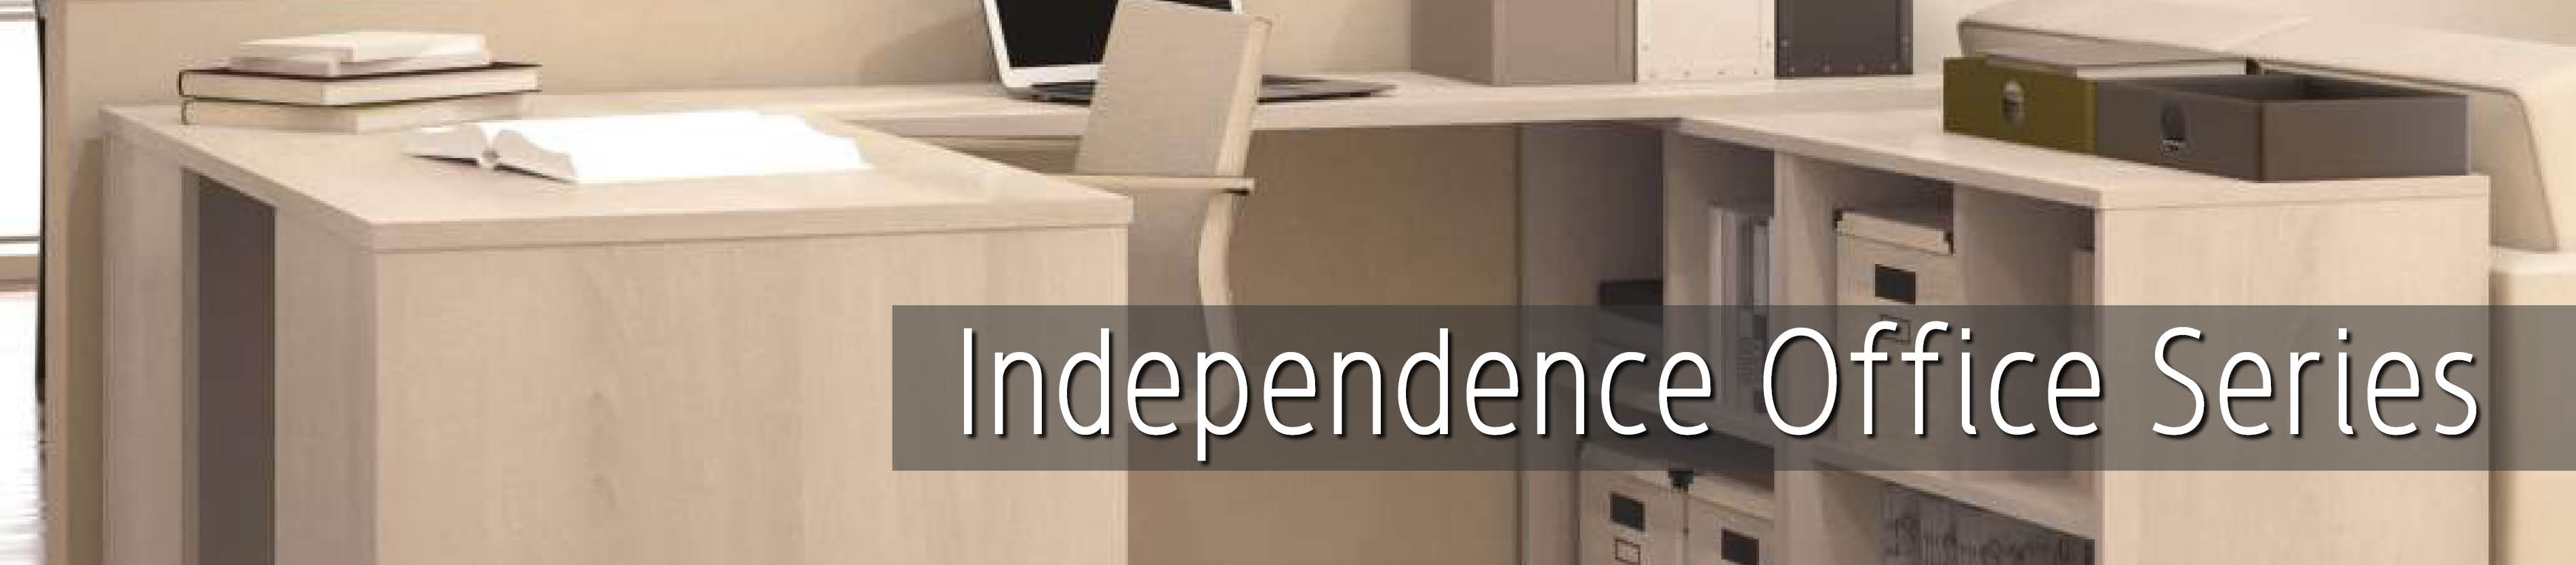 Independence Office Series